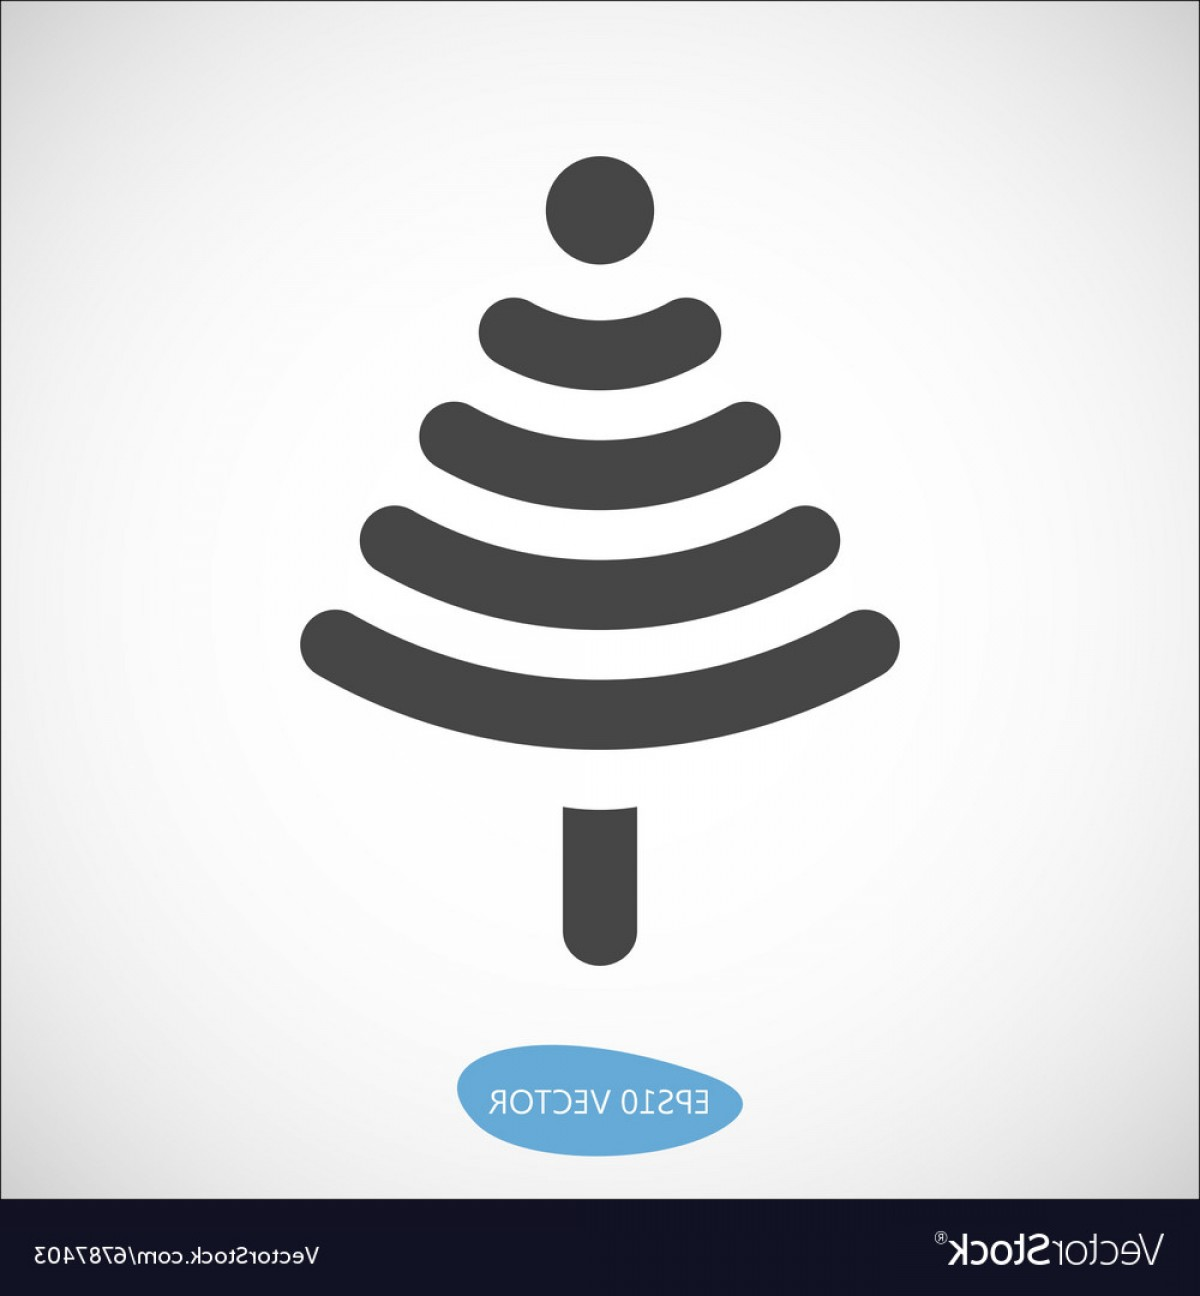 Vector-Based Christmas: Funny Christmas Tree Icon Based On Wireless Symbol Vector